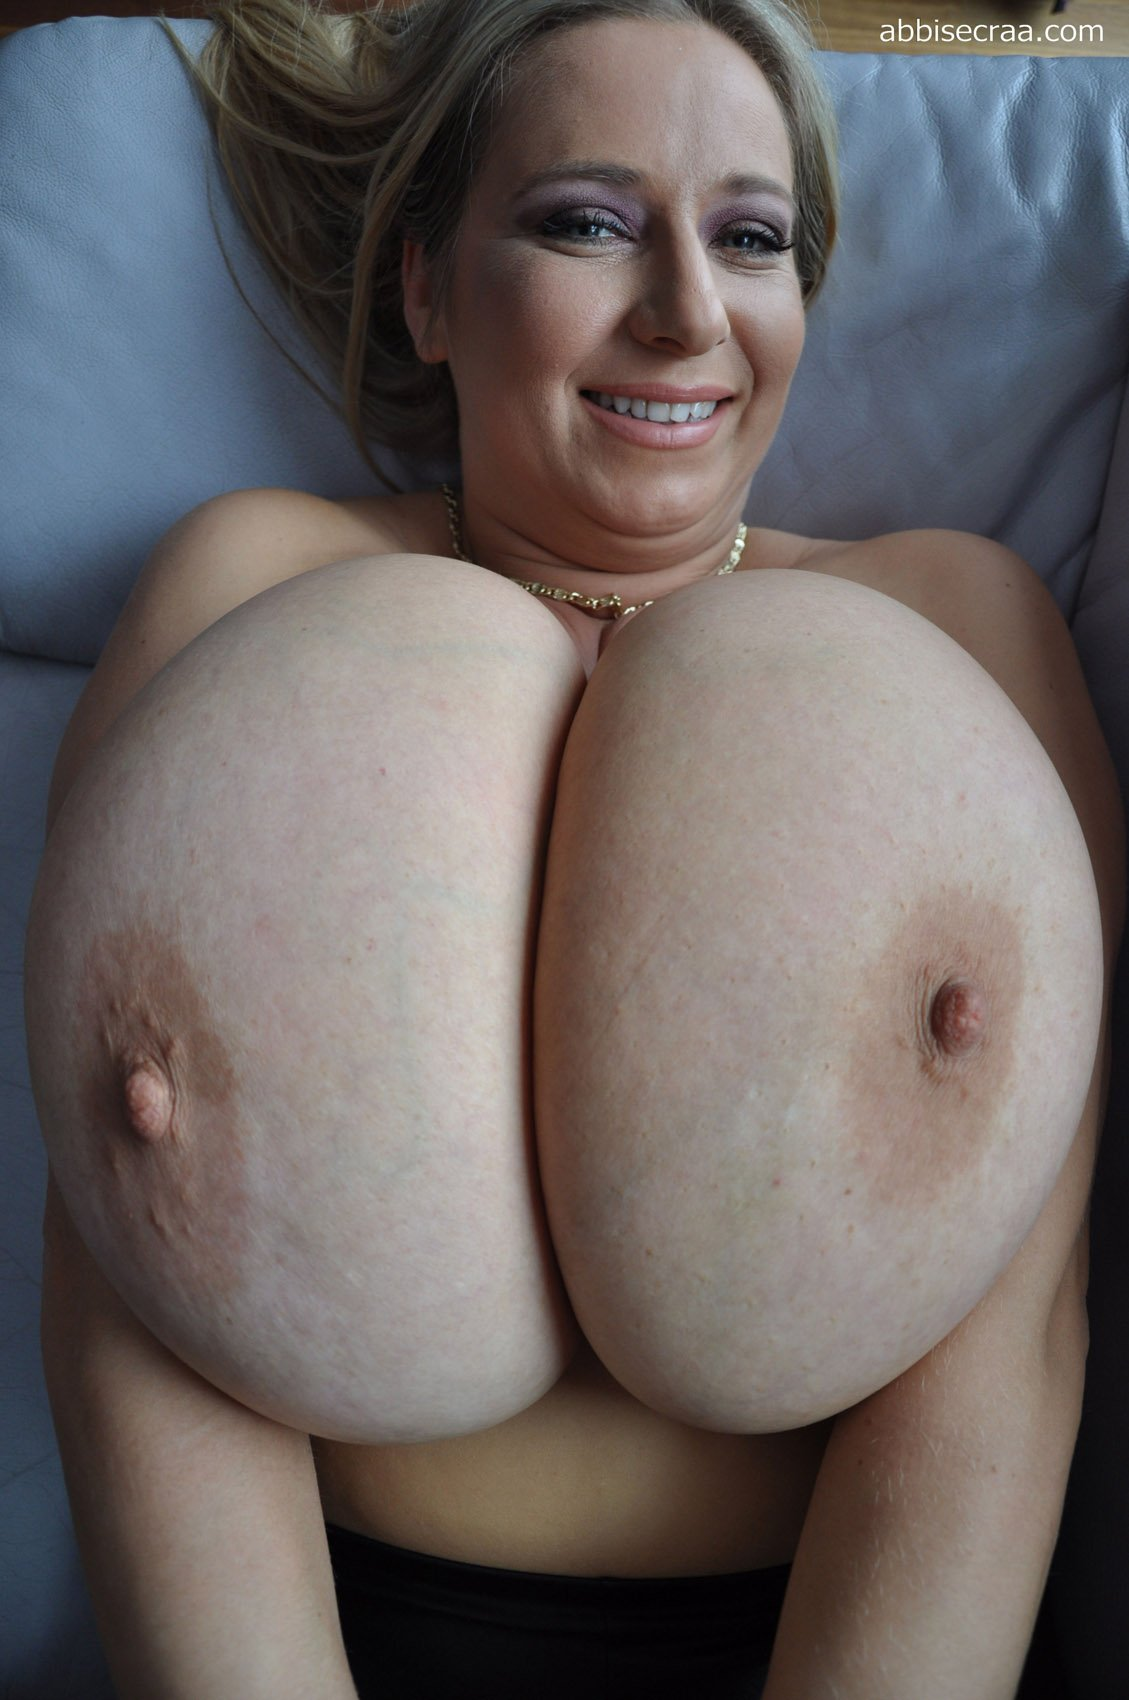 Naked humongous boobs